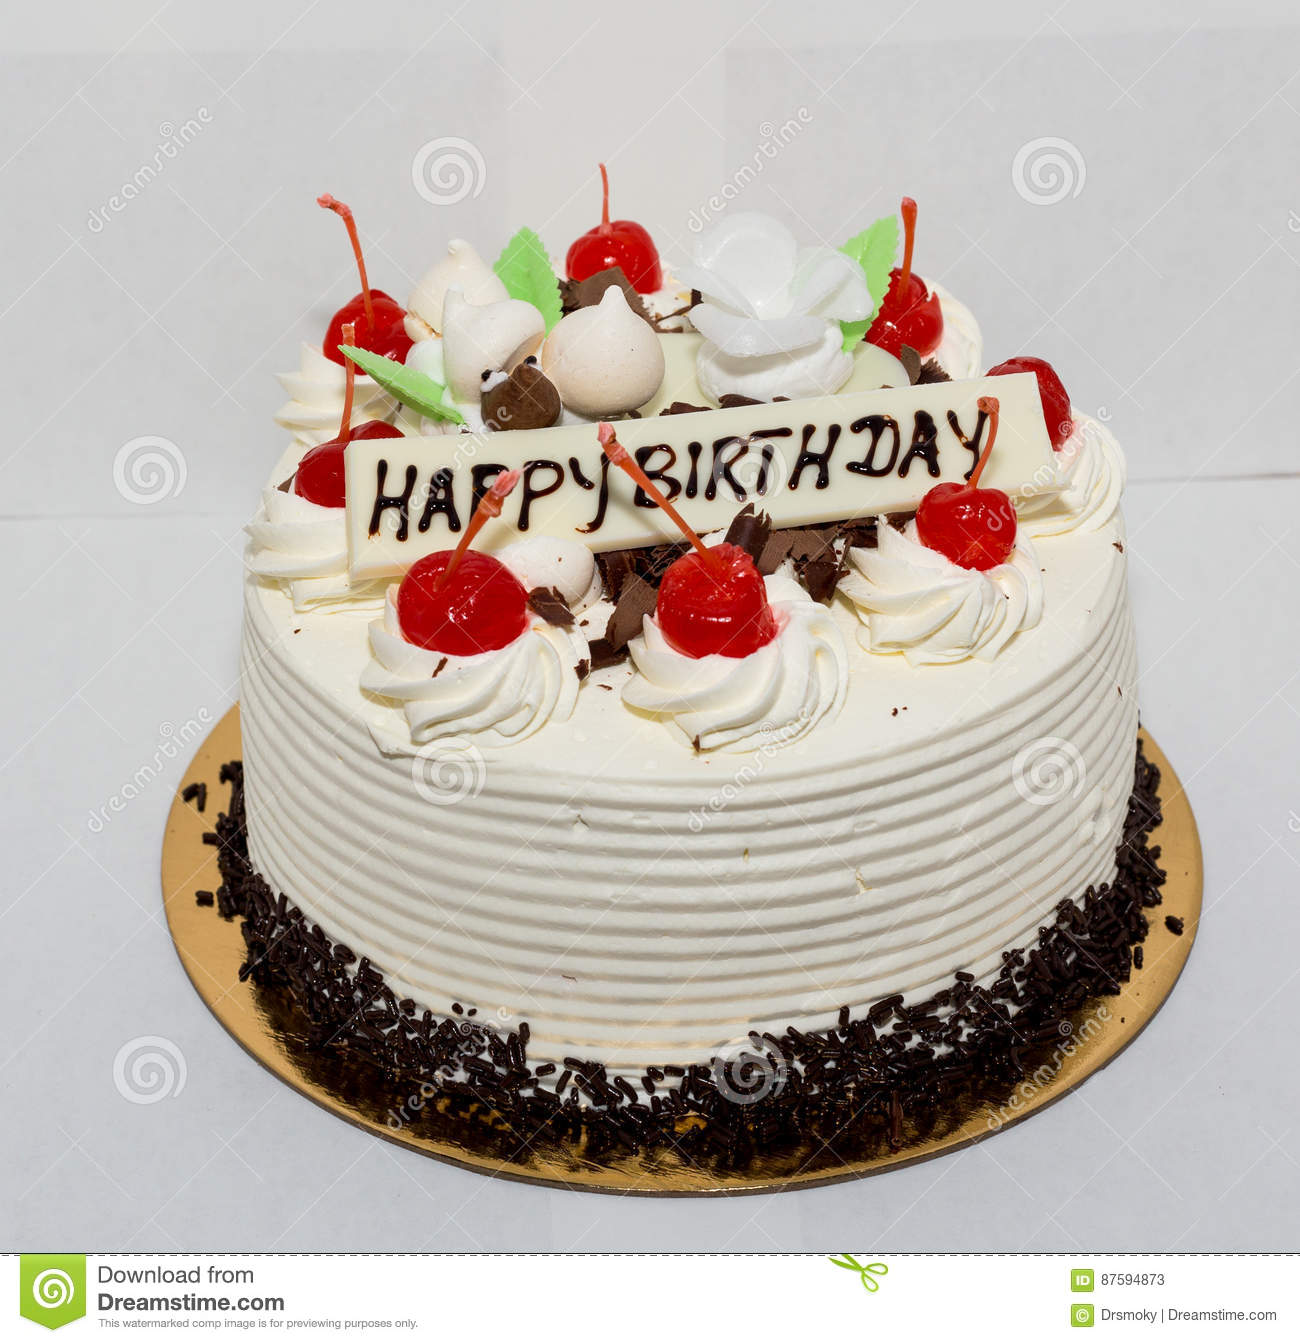 Black Forest Cake Stock Image Image Of Party Happy 87594873